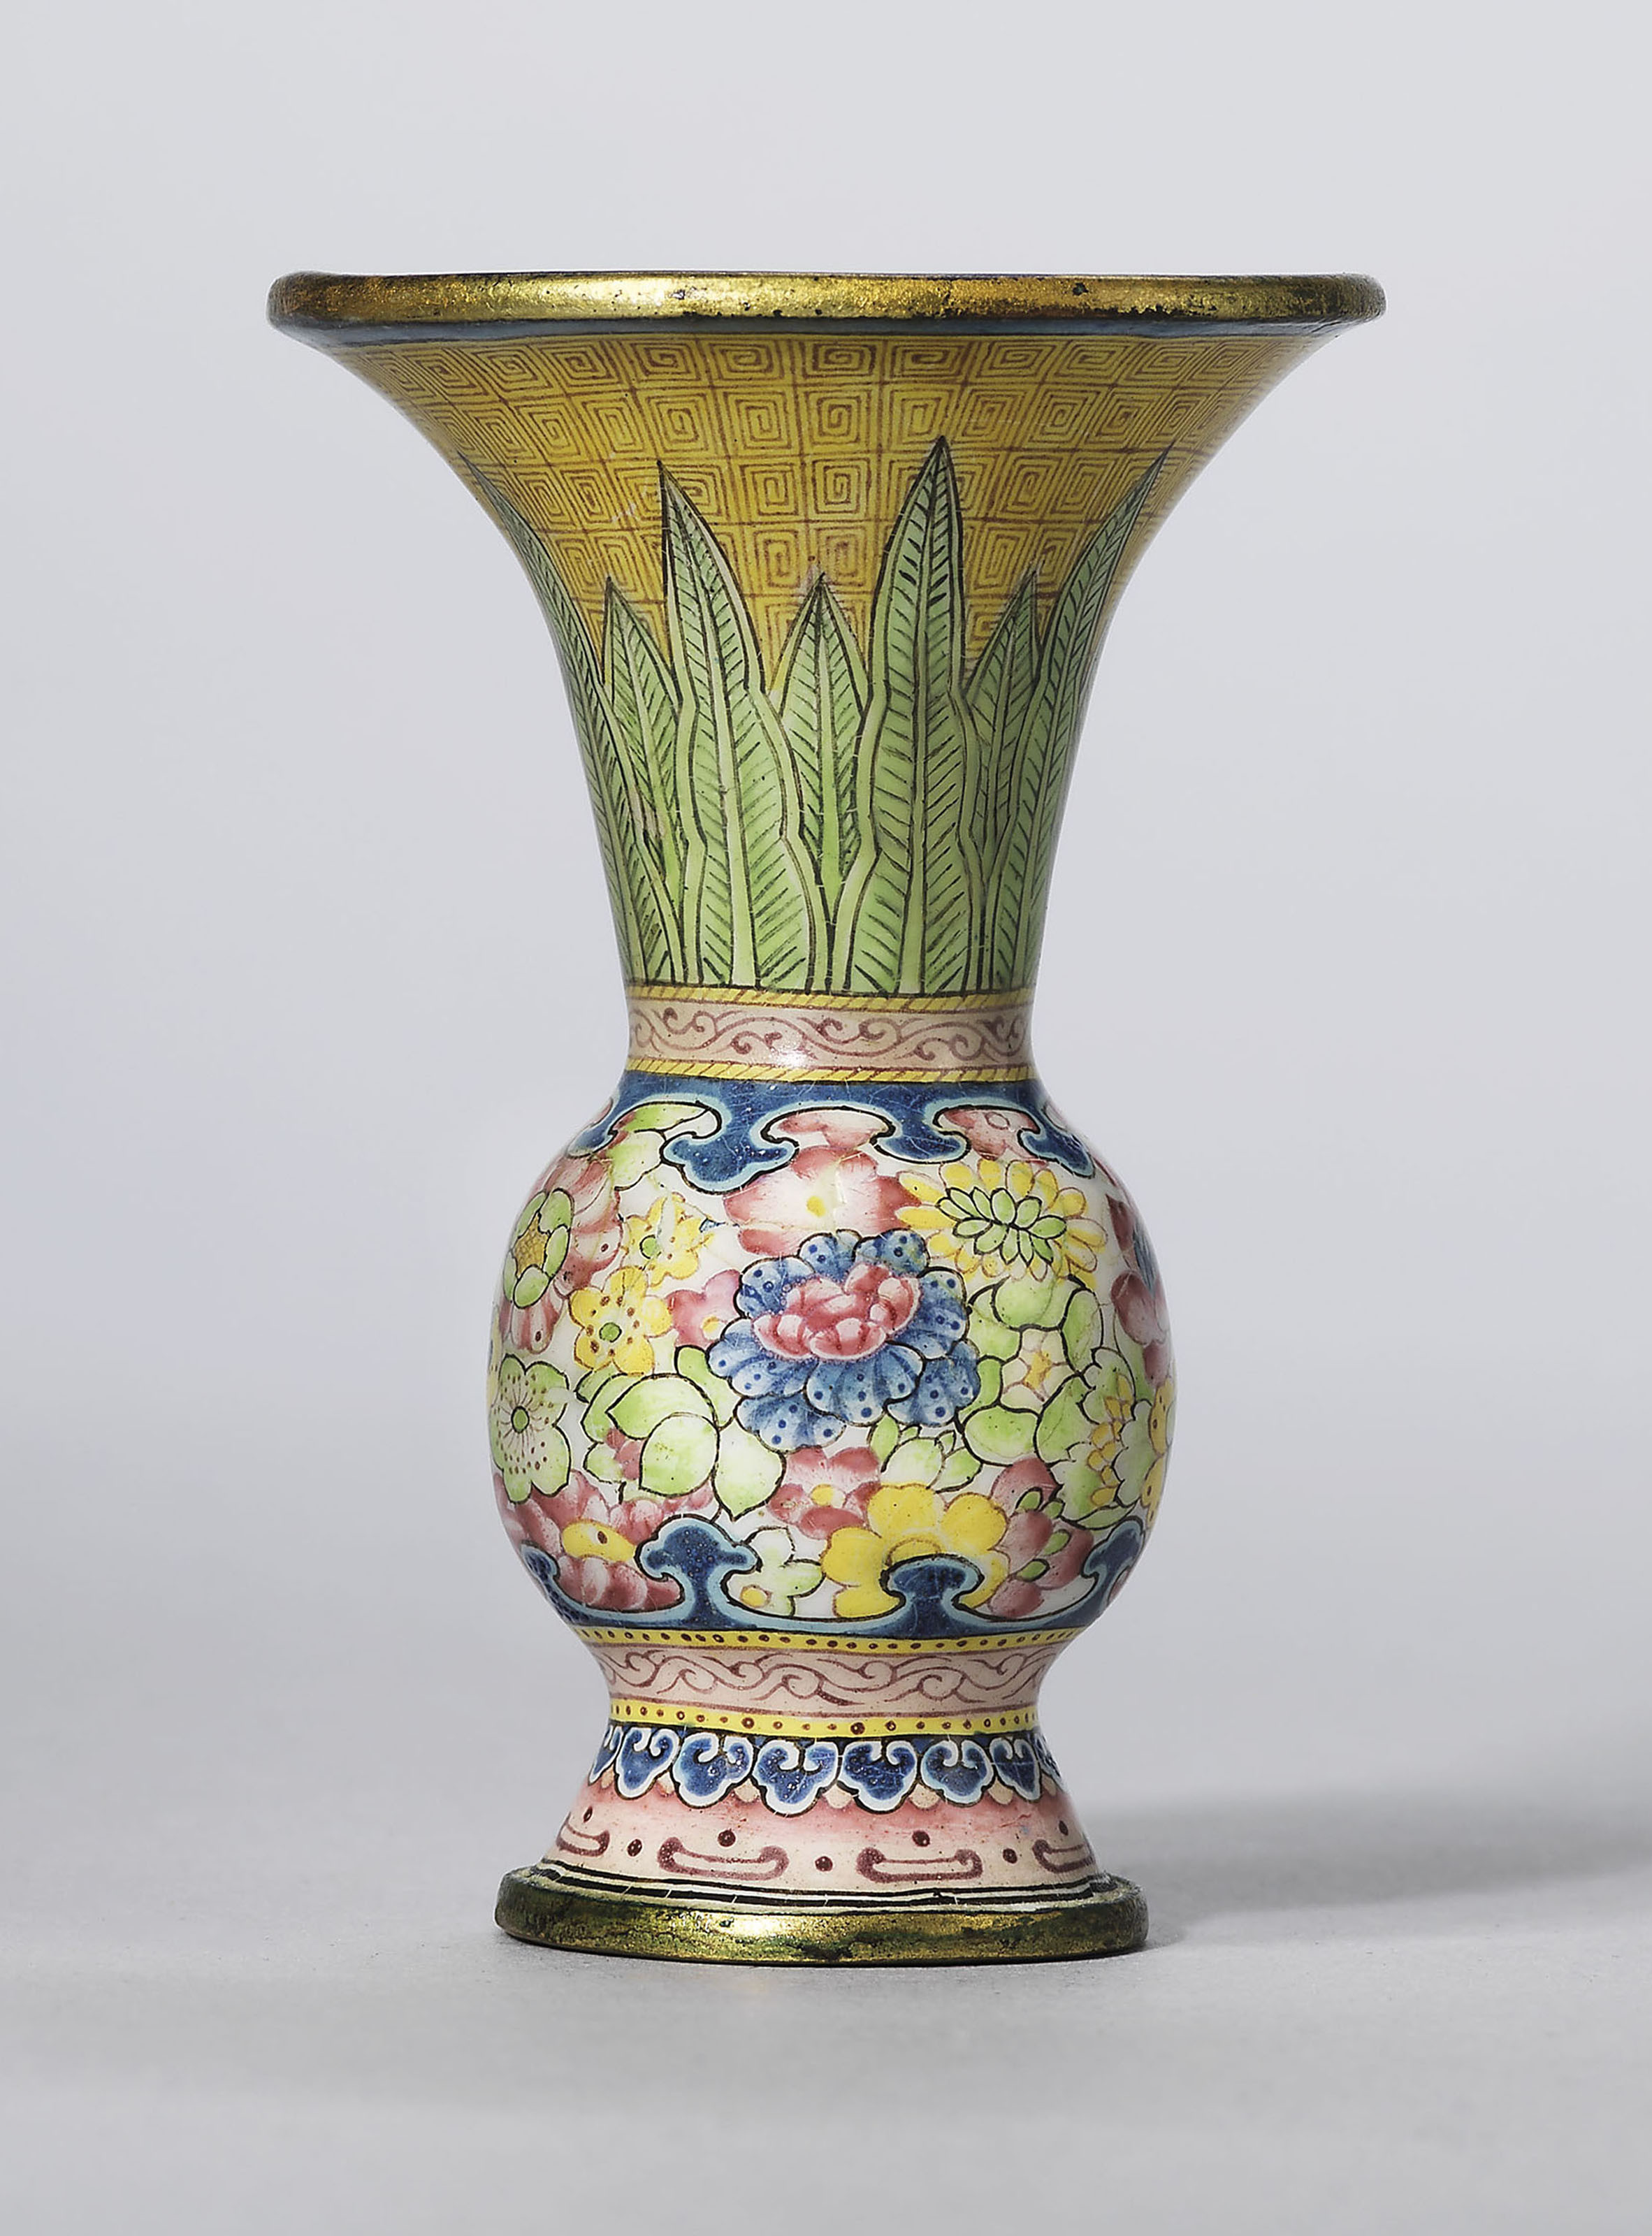 oriental vase stand of chinese vase stand images a guide to the symbolism of flowers on for chinese vase stand images a guide to the symbolism of flowers on chinese ceramics of chinese